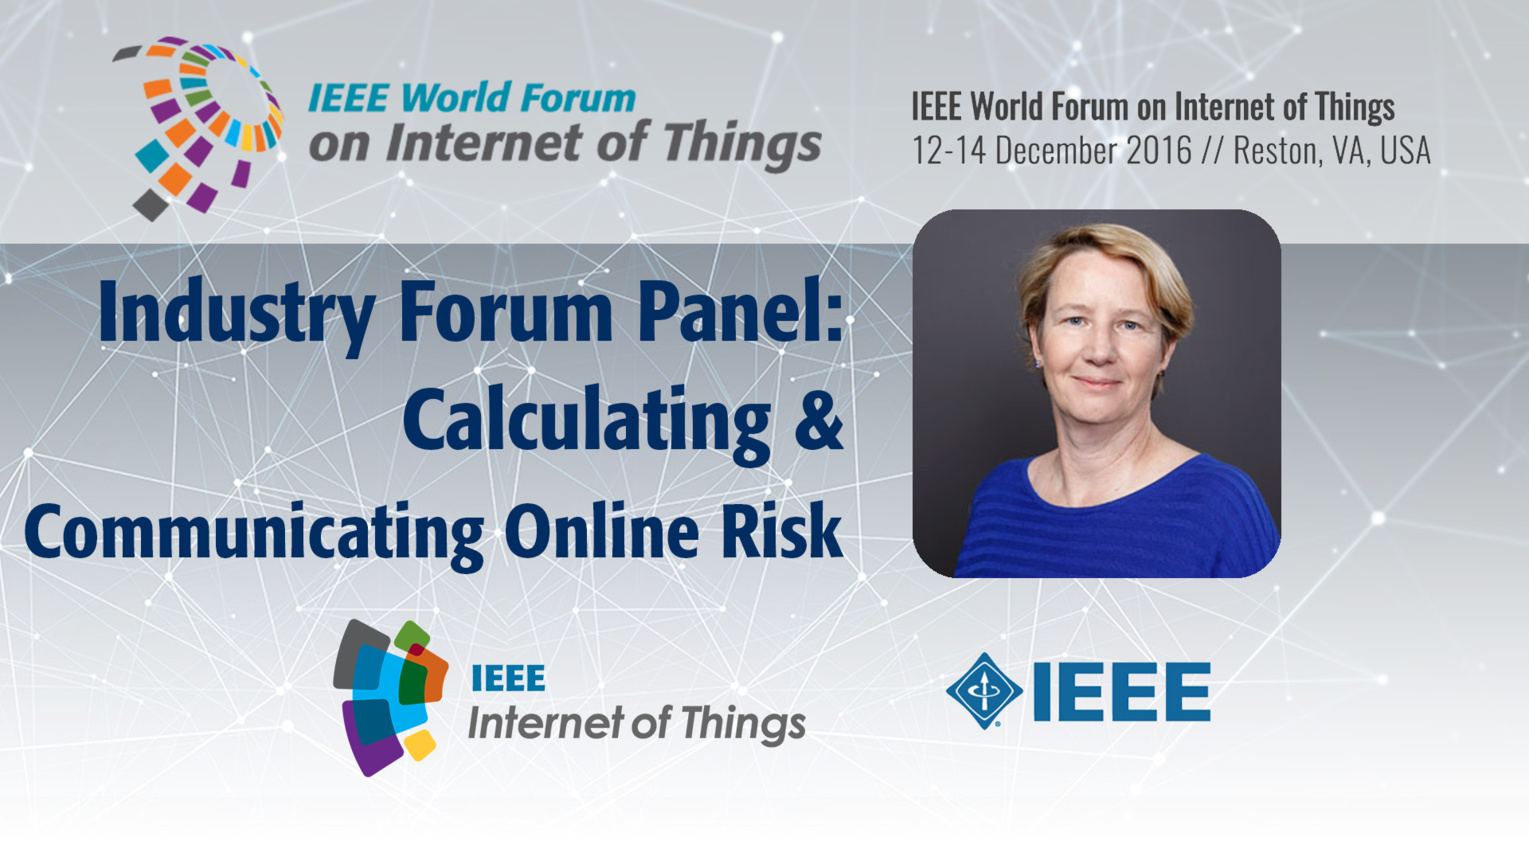 Jean Camp: Calculating and Communicating Online Risk - Industry Forum Panel: WF IoT 2016